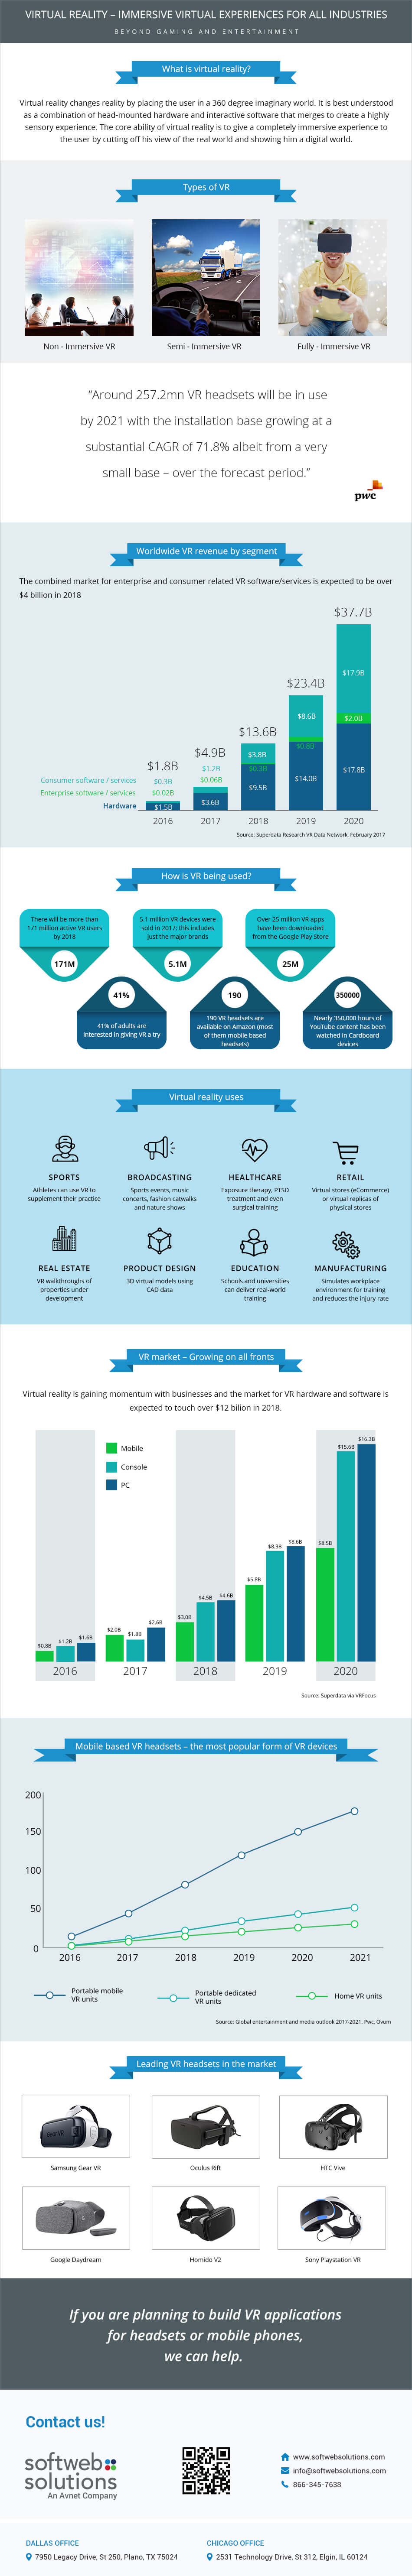 VR infographic for business